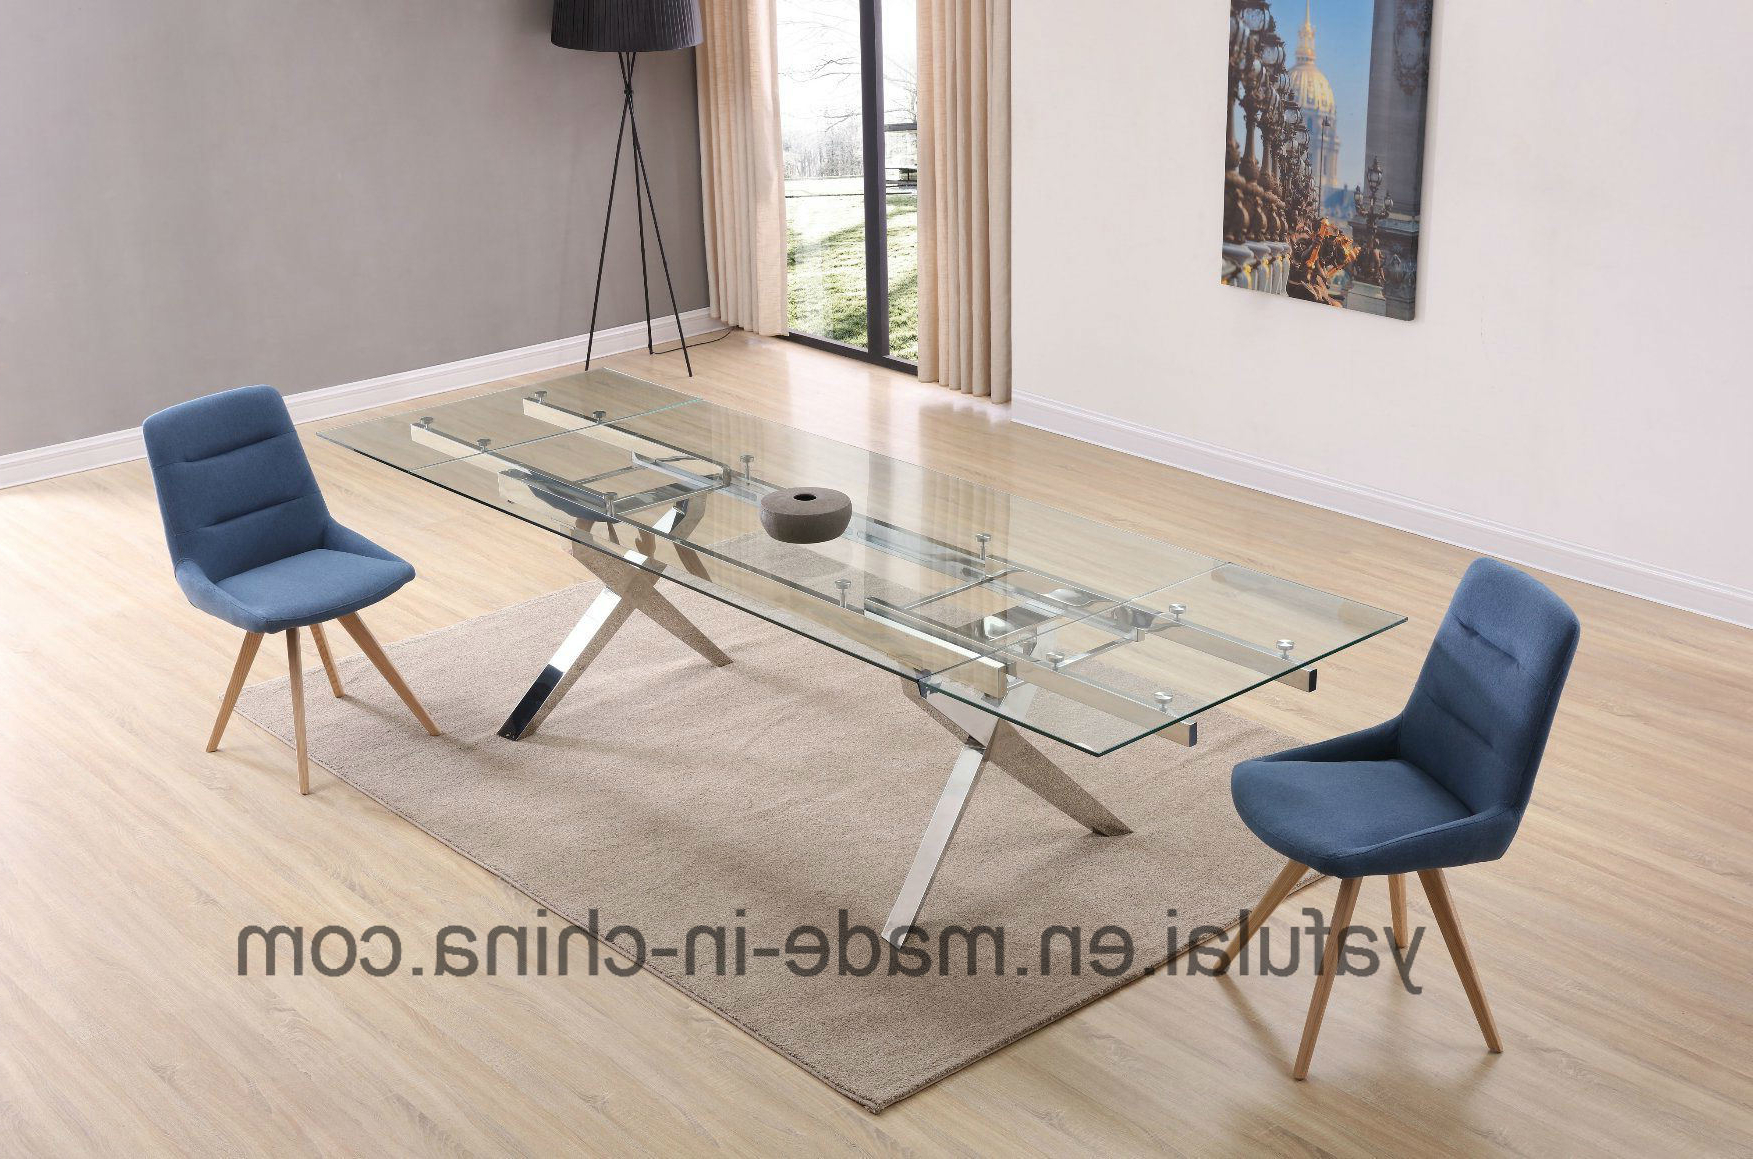 [%[Hot Item] Modern Furniture Stainless Steel Frame Tempered Glass Top Dining  Table Throughout 2017 Modern Glass Top Extension Dining Tables In Stainless Modern Glass Top Extension Dining Tables In Stainless Within Well Known [Hot Item] Modern Furniture Stainless Steel Frame Tempered Glass Top Dining  Table Popular Modern Glass Top Extension Dining Tables In Stainless Within [Hot Item] Modern Furniture Stainless Steel Frame Tempered Glass Top Dining  Table Fashionable [Hot Item] Modern Furniture Stainless Steel Frame Tempered Glass Top Dining  Table For Modern Glass Top Extension Dining Tables In Stainless%] (View 4 of 30)